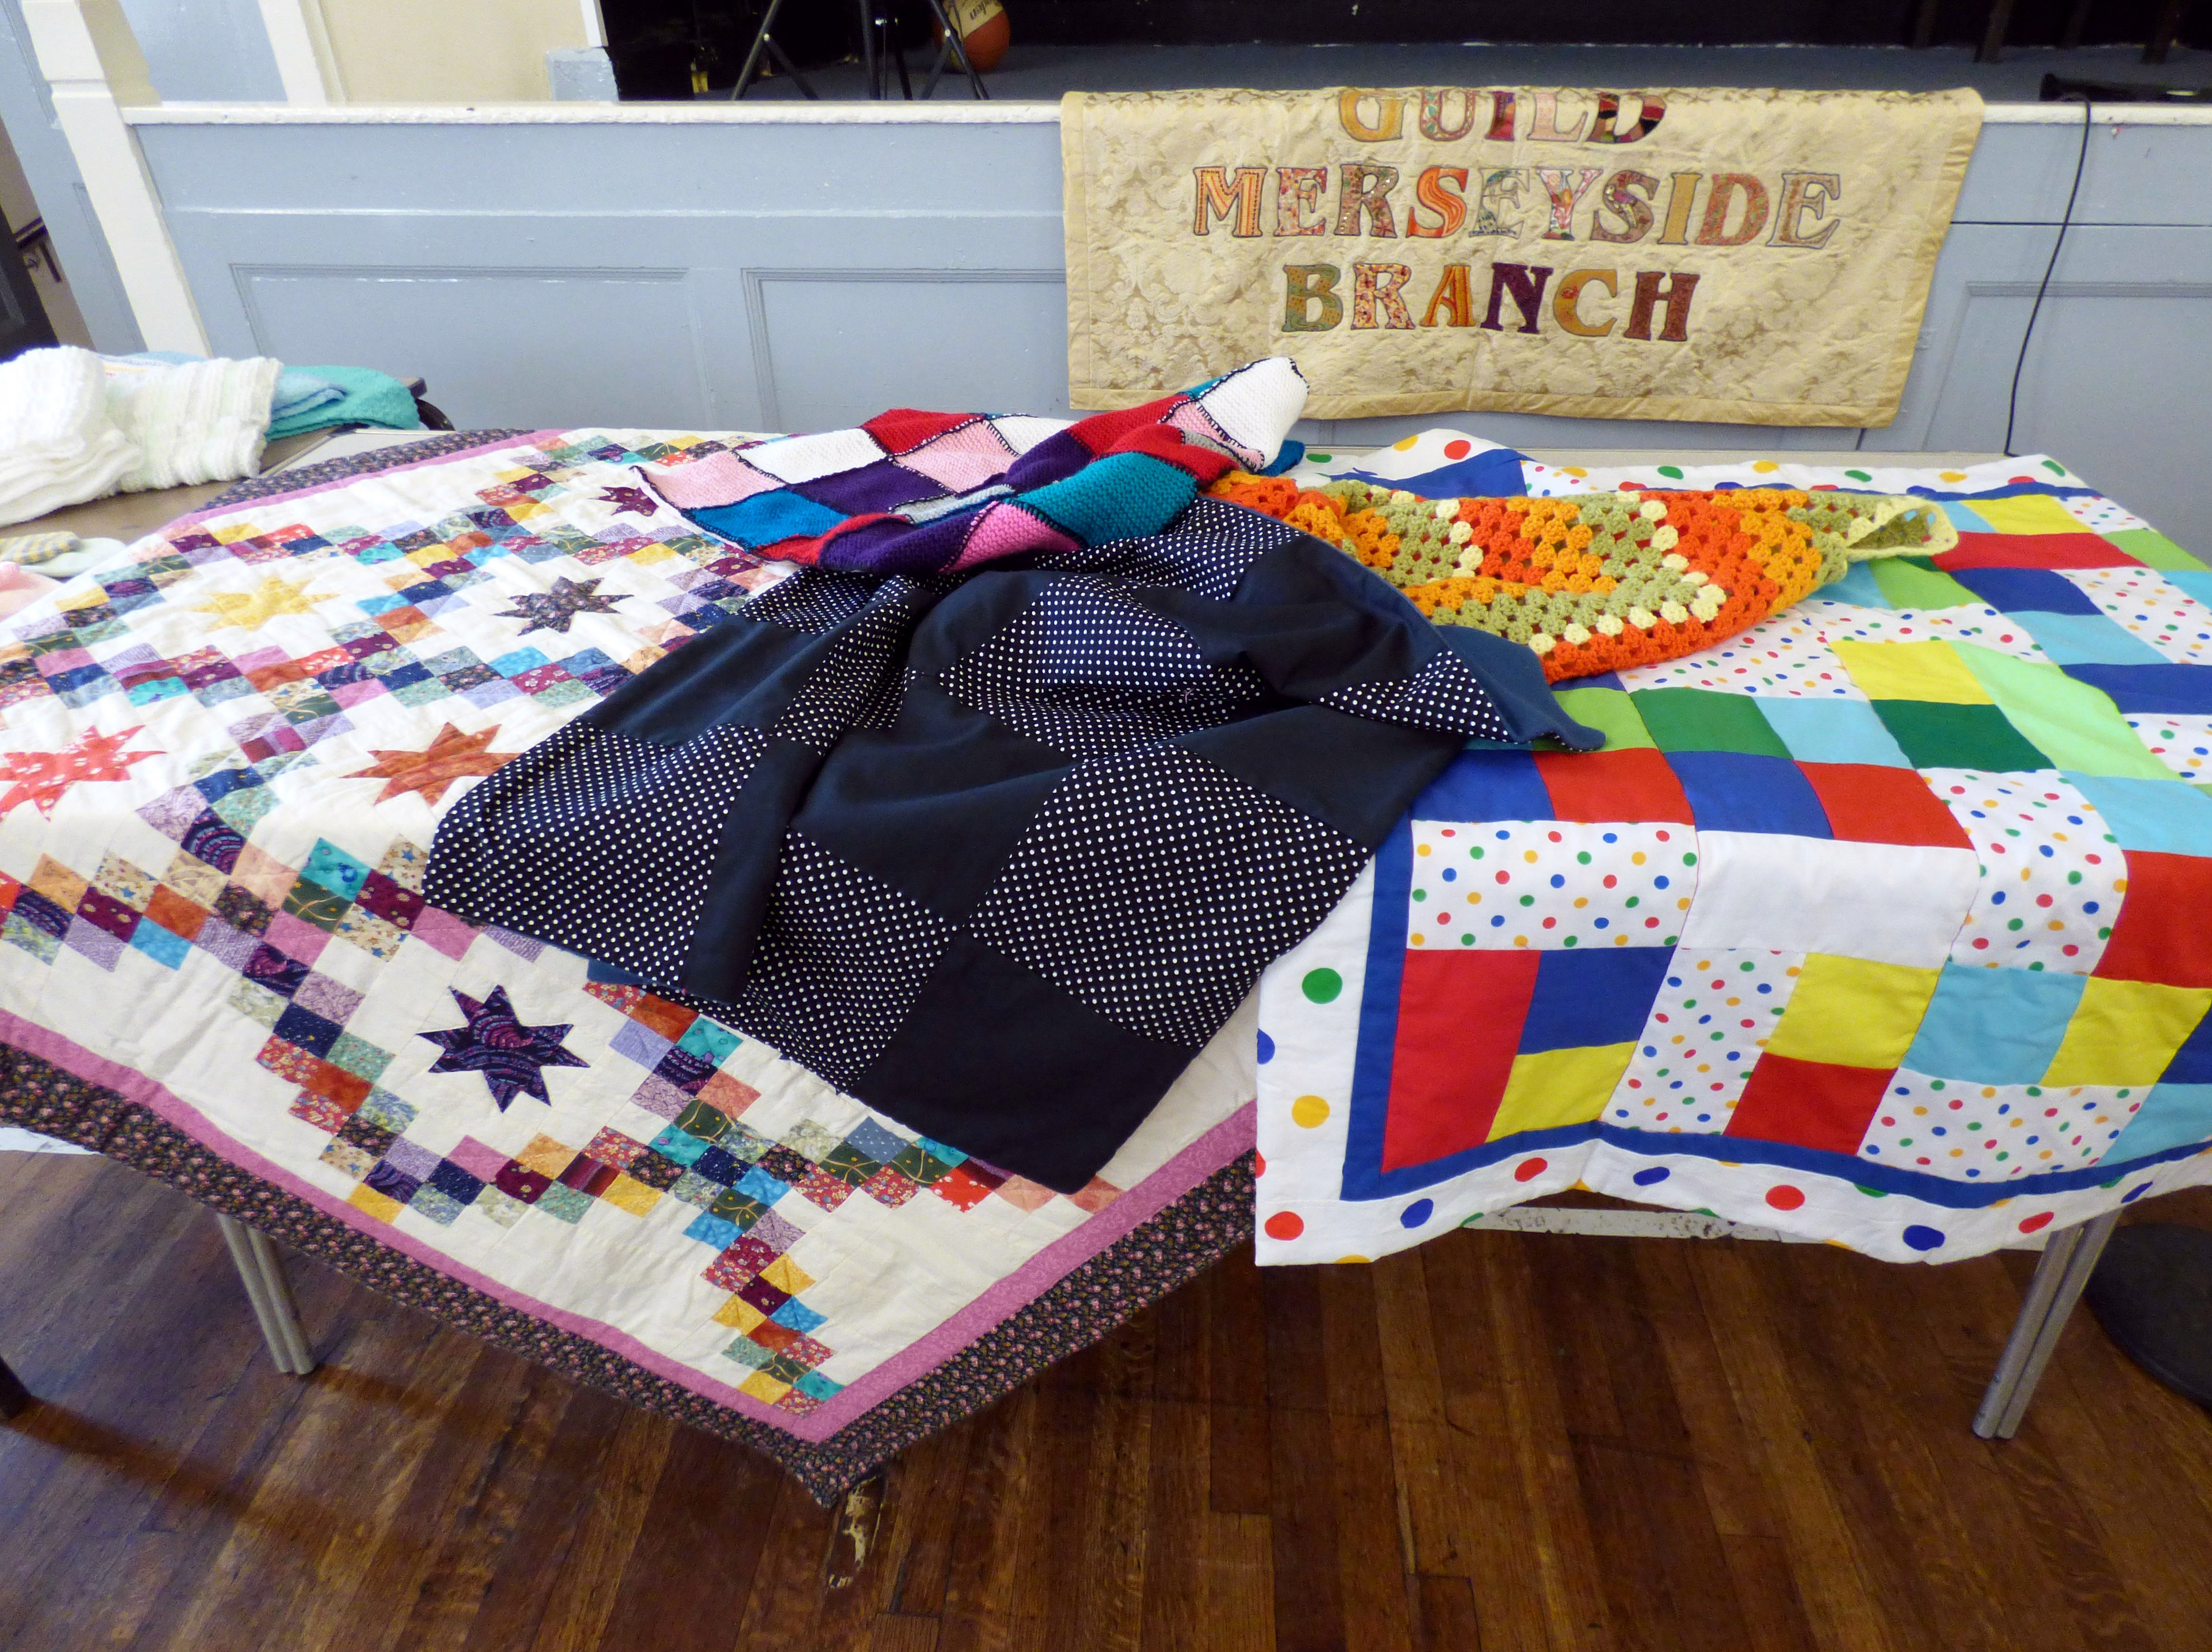 donated quilts and blankets at Talk by Caroline Fogell from Project Linus